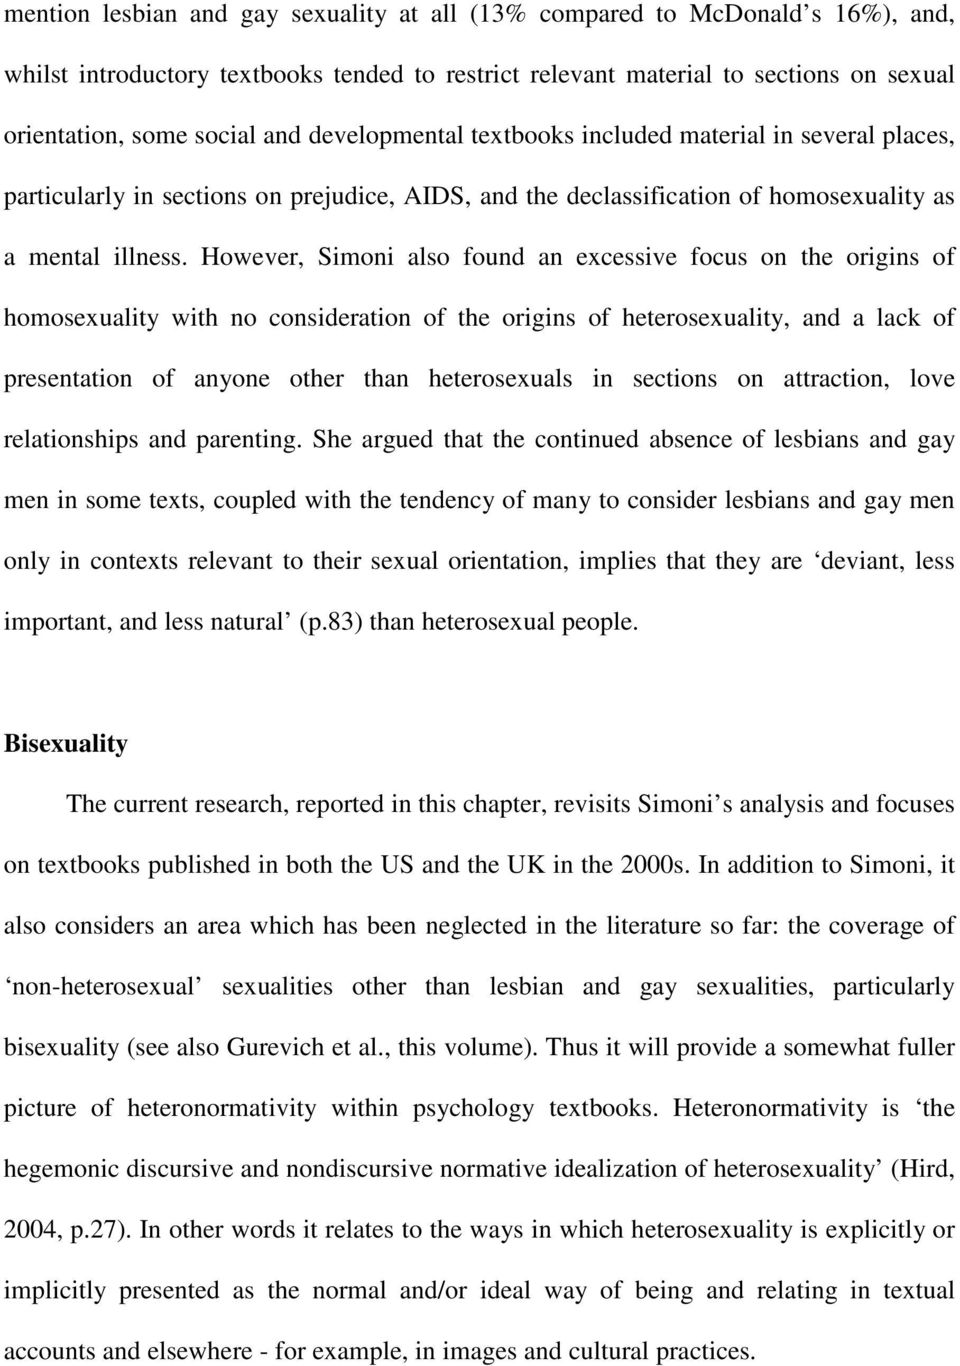 However, Simoni also found an excessive focus on the origins of homosexuality with no consideration of the origins of heterosexuality, and a lack of presentation of anyone other than heterosexuals in